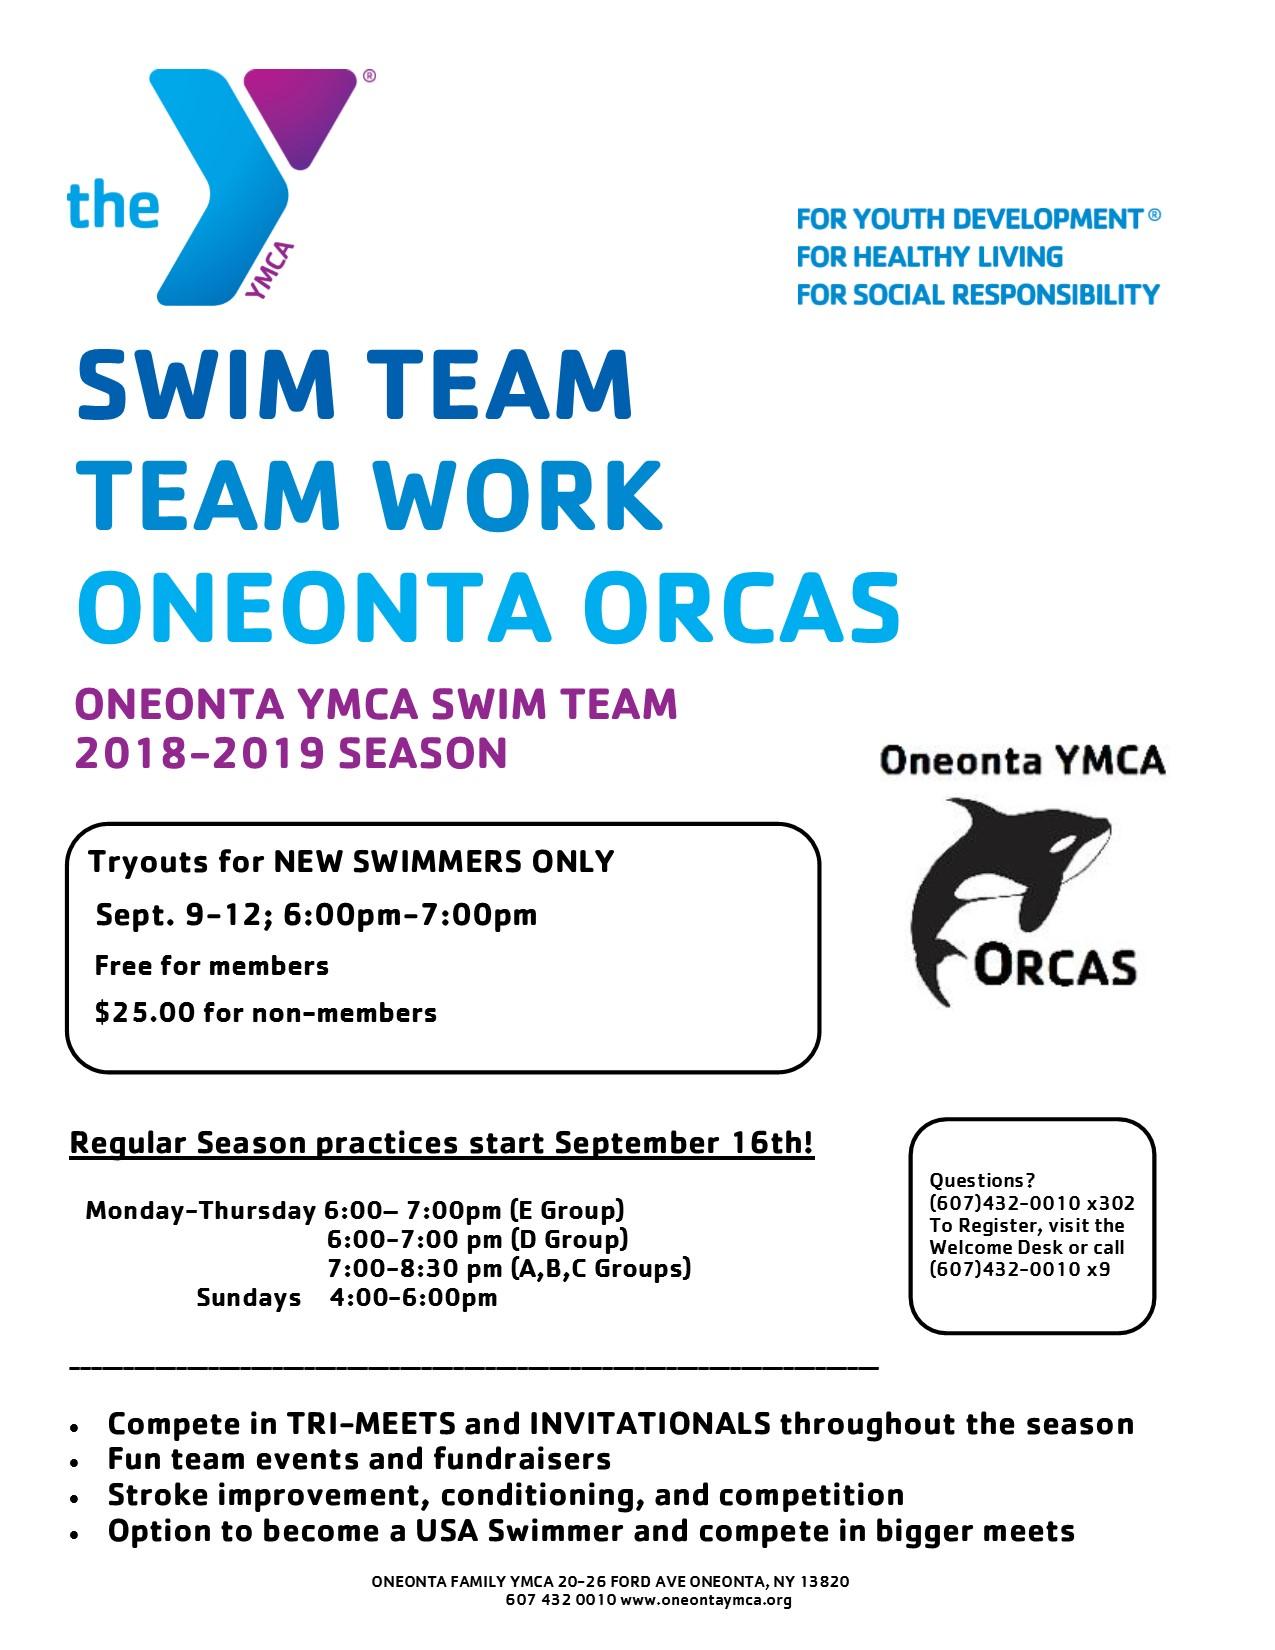 Orcas Swim Team At the Oneonta Family YMCA